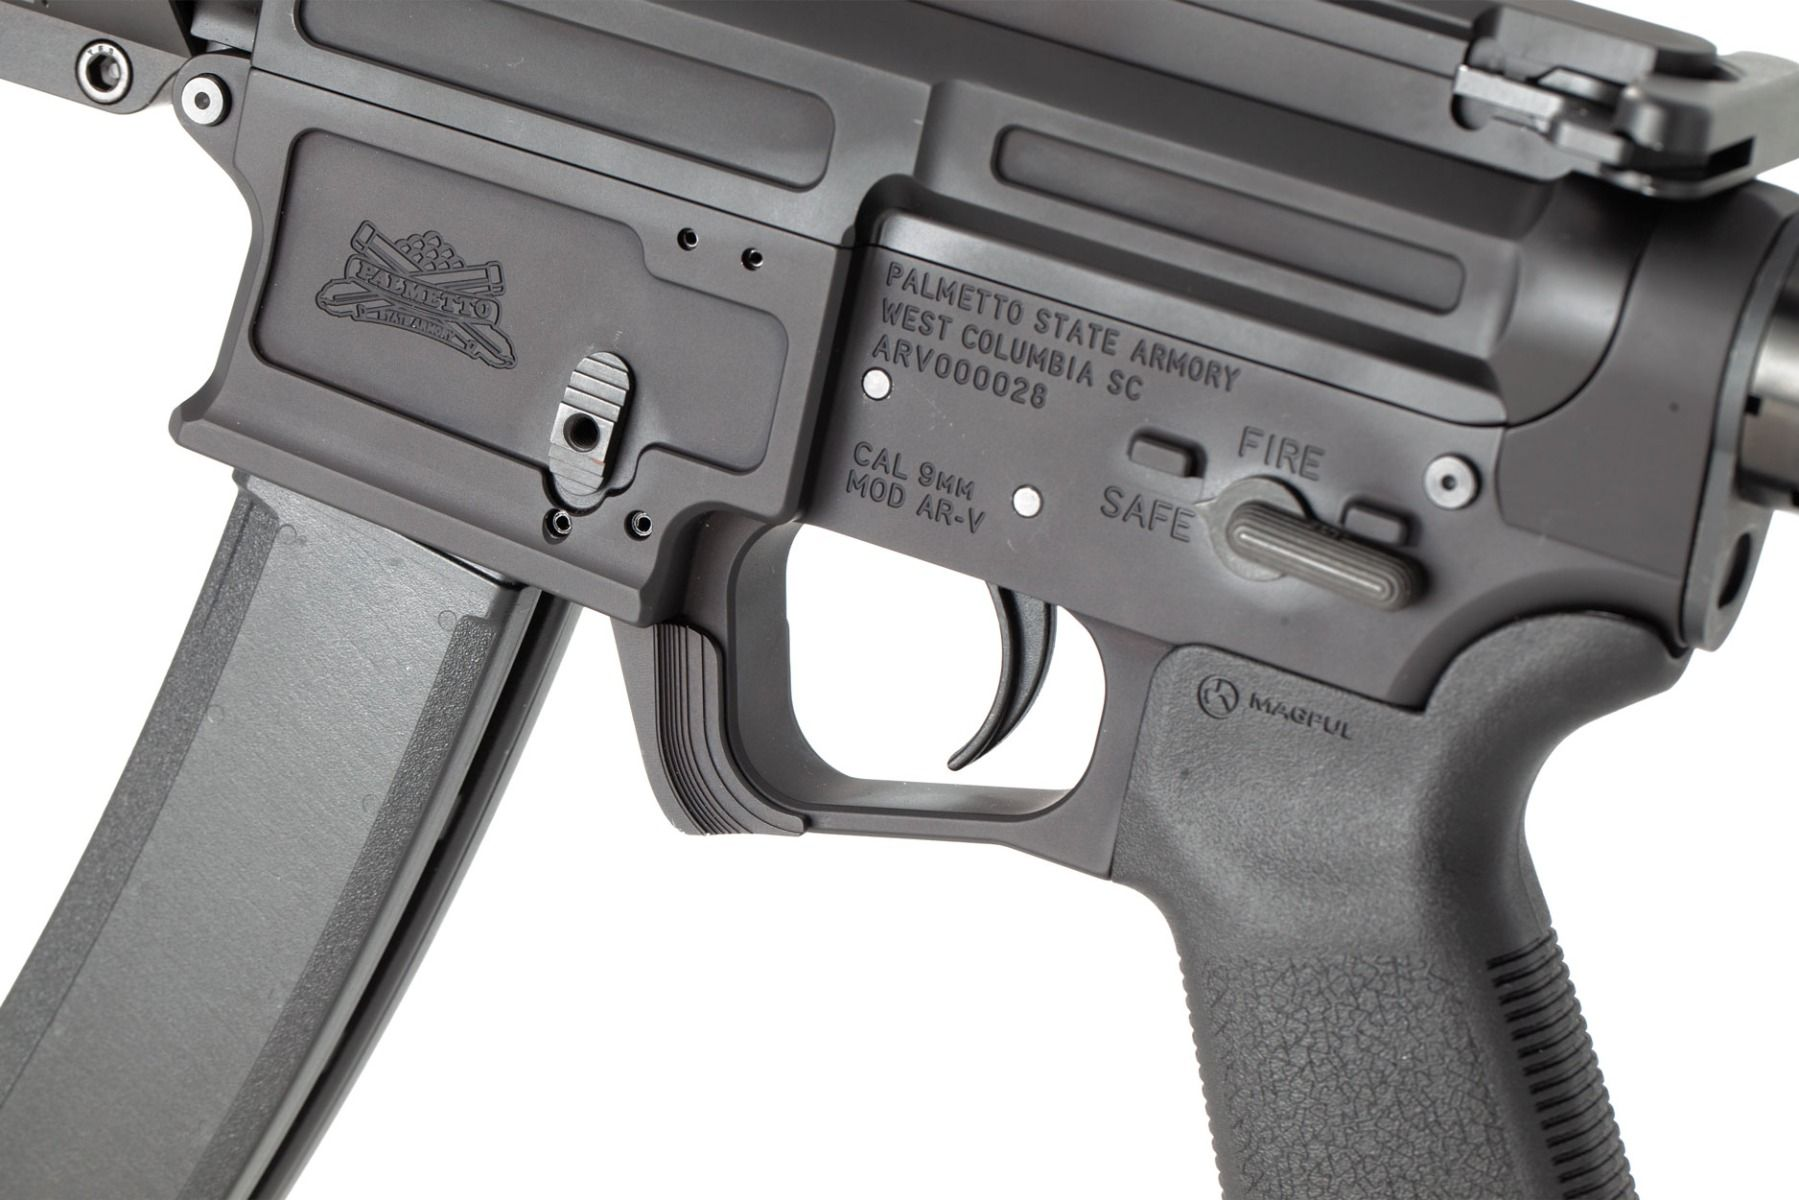 PALMETTO STATE ARMORY EXPANDS PCC OFFERINGS WITH THE NEW AR-V